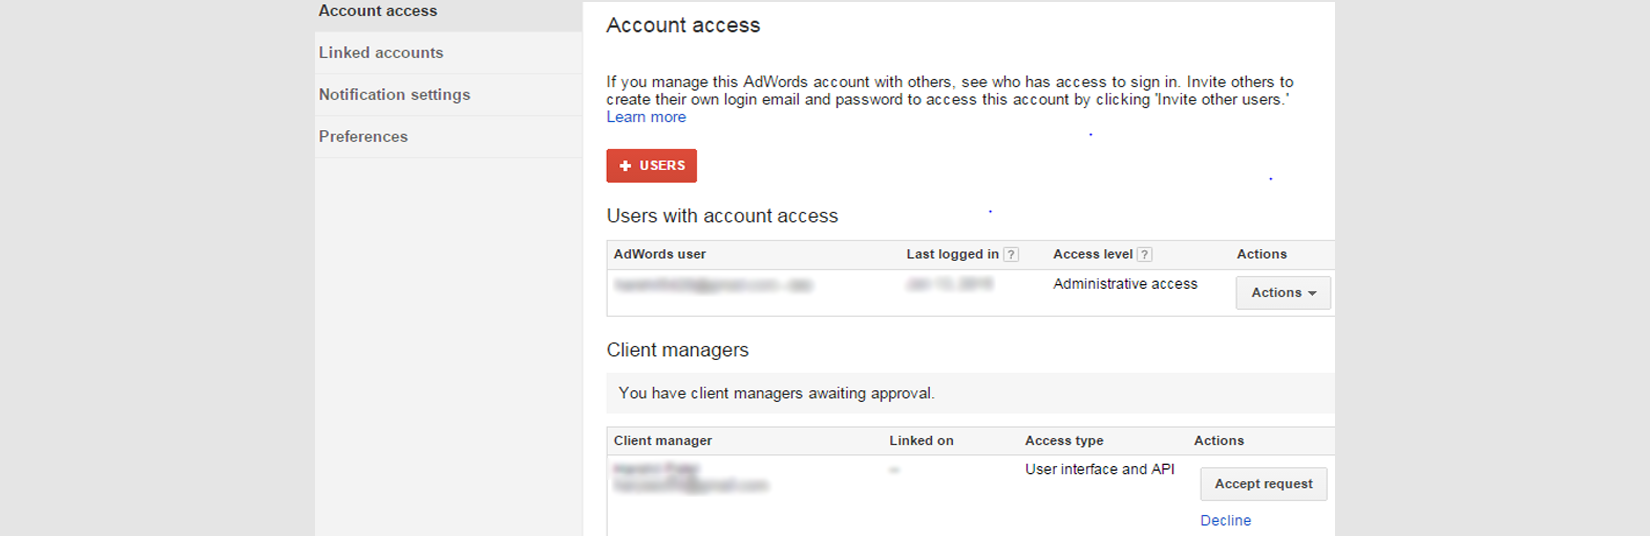 Adwords Permission Access to MCC